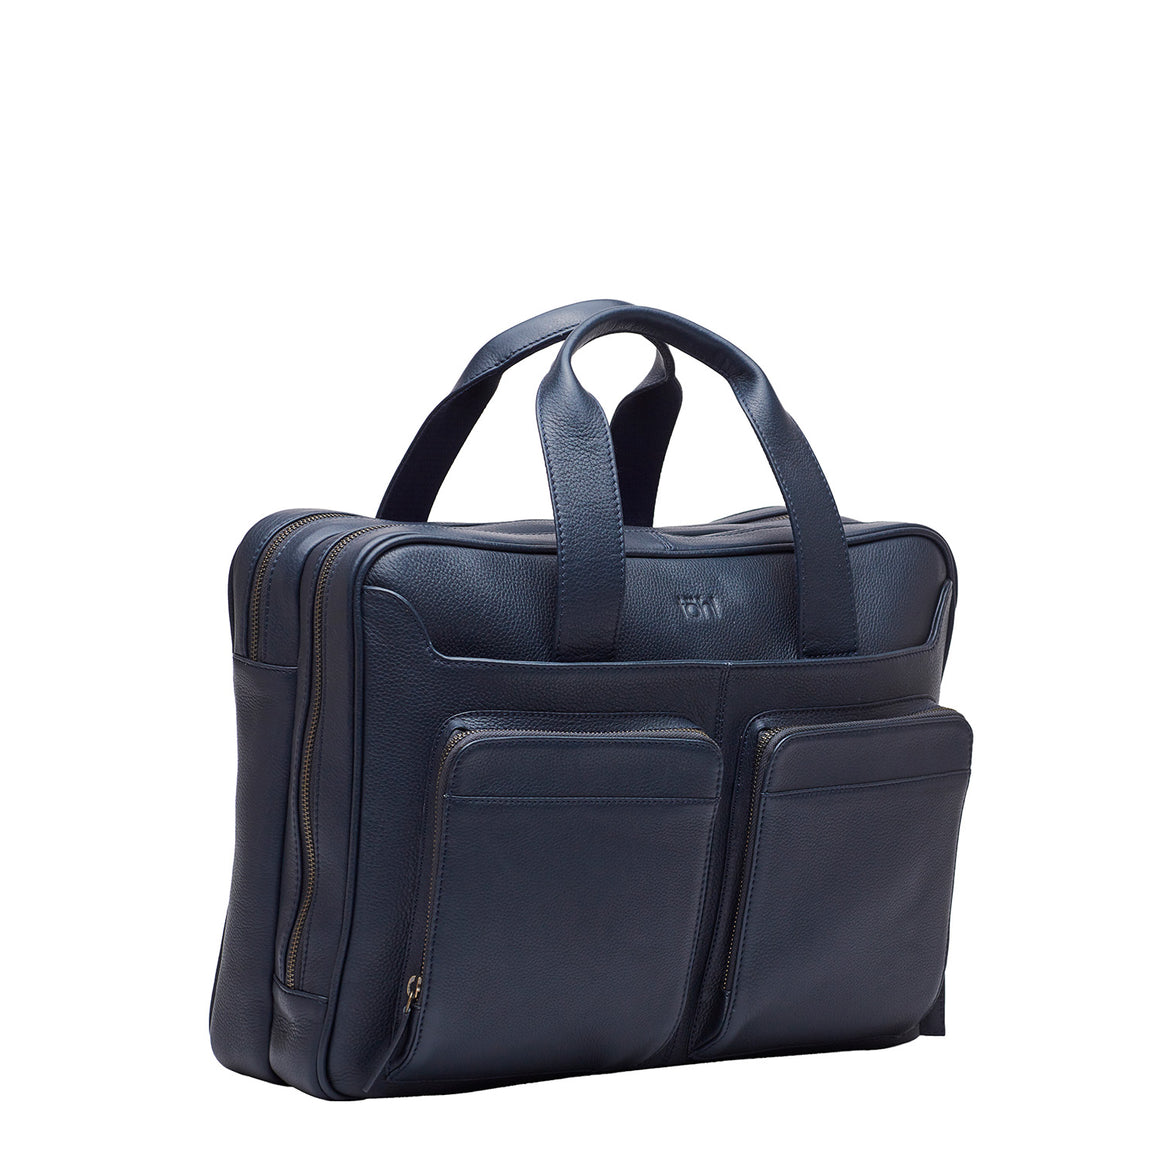 LB 0004 - TOHL AILLO MEN'S LAPTOP BAG - NAVY